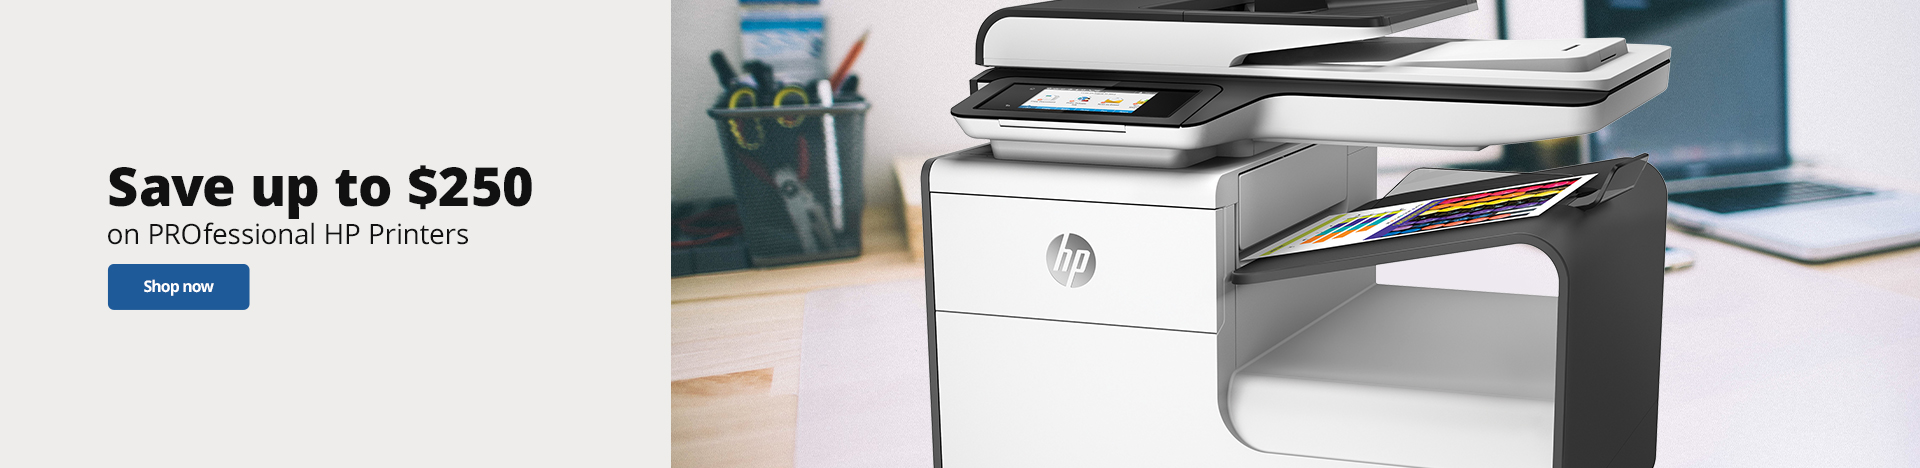 Get a PRO FOR YOUR BUSINESS! Save up to $250 on select HP Laserjet Pro Printers